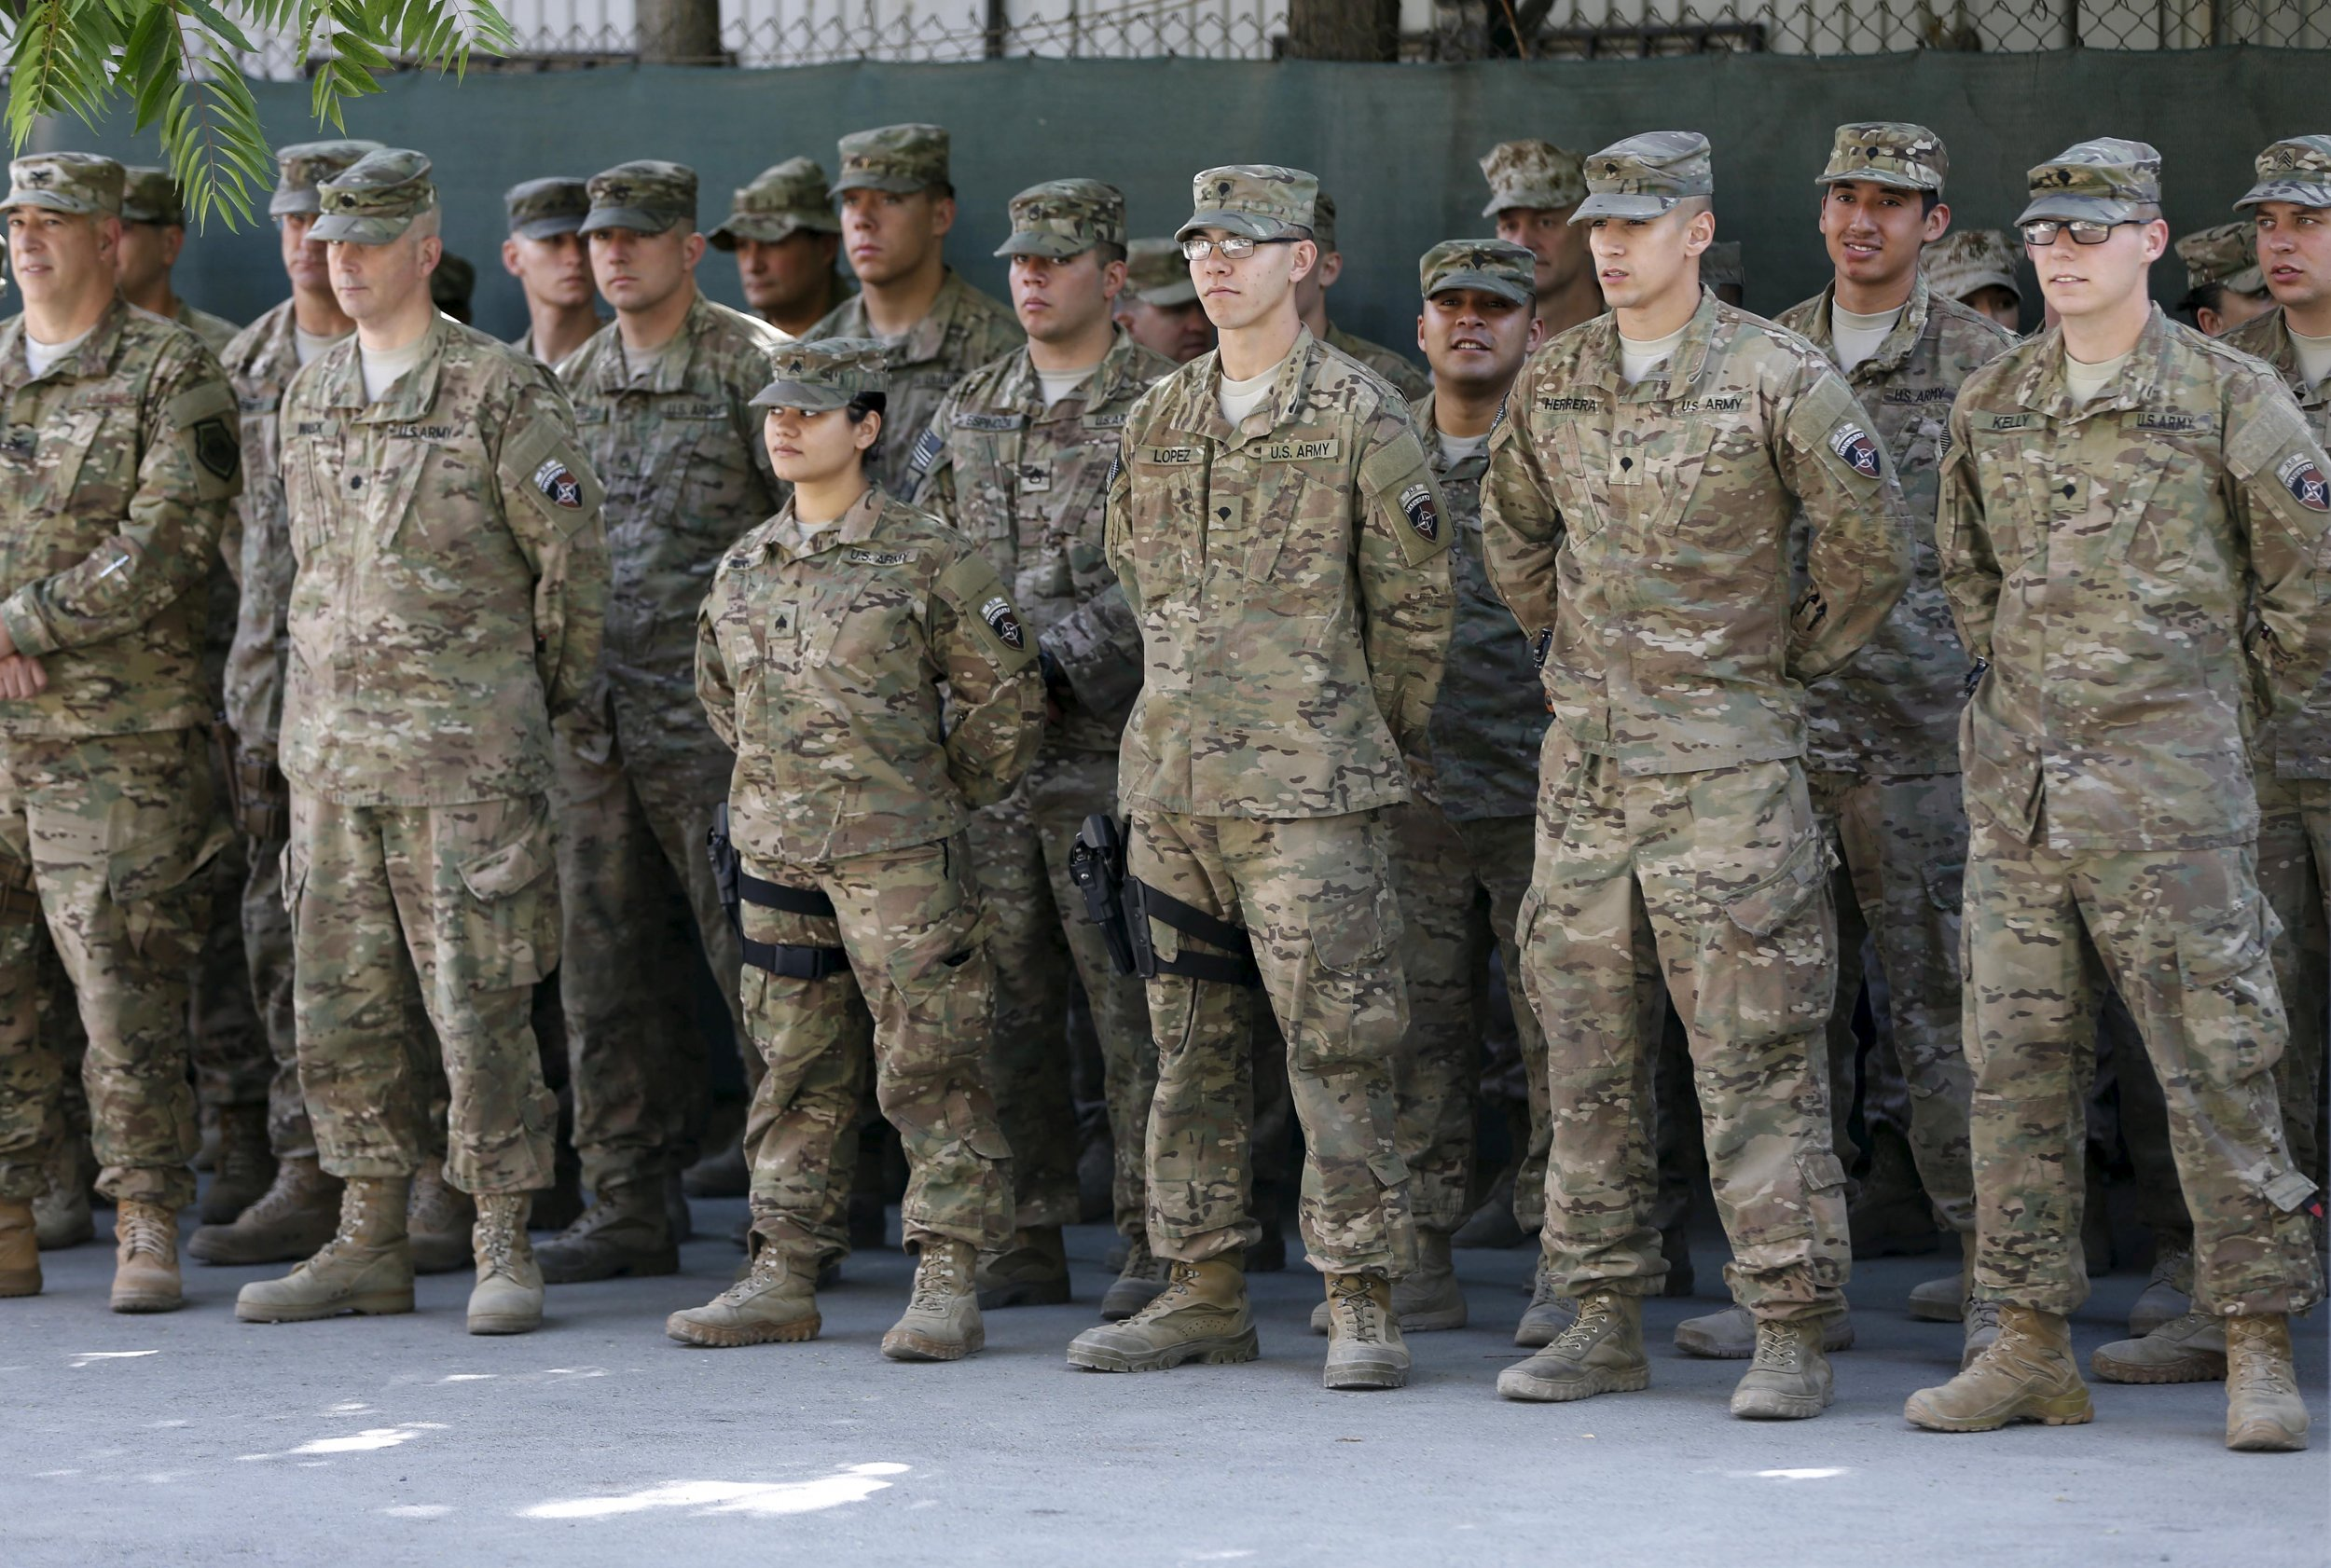 Army Of Us: U.S. Army To Cut 40,000 Troops Over Next Two Years